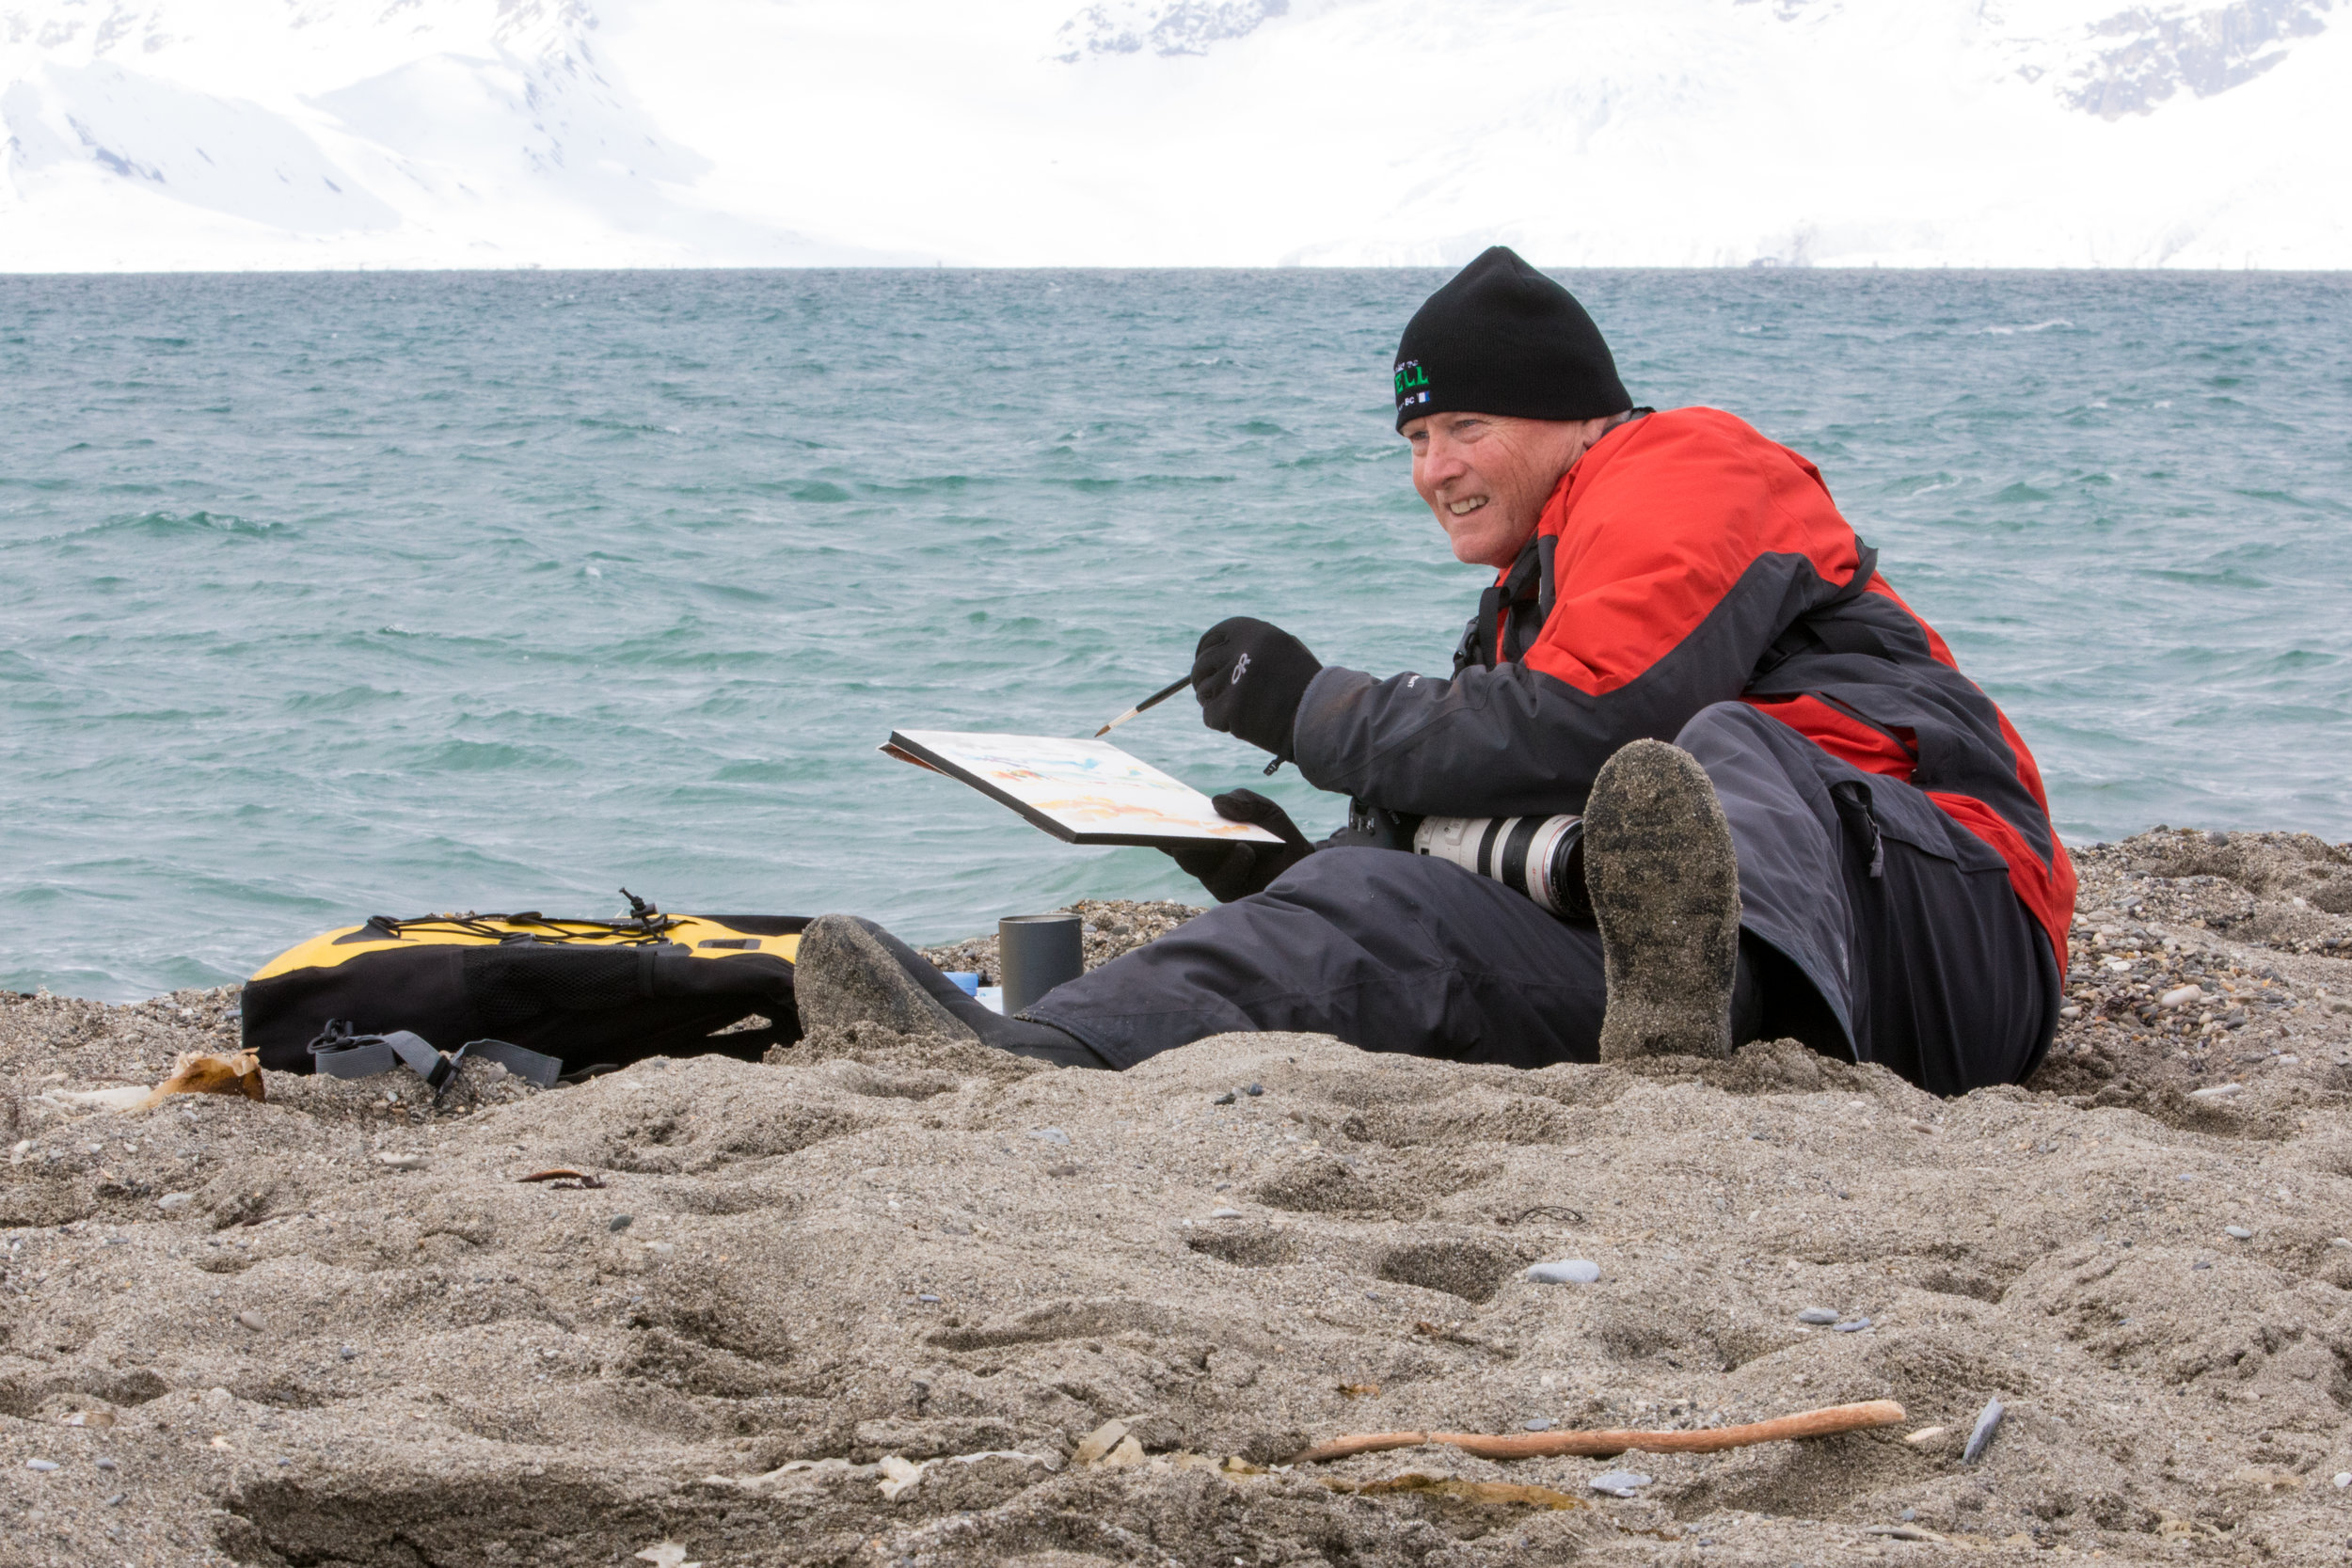 Painting 'Three Walrus' in the Arctic